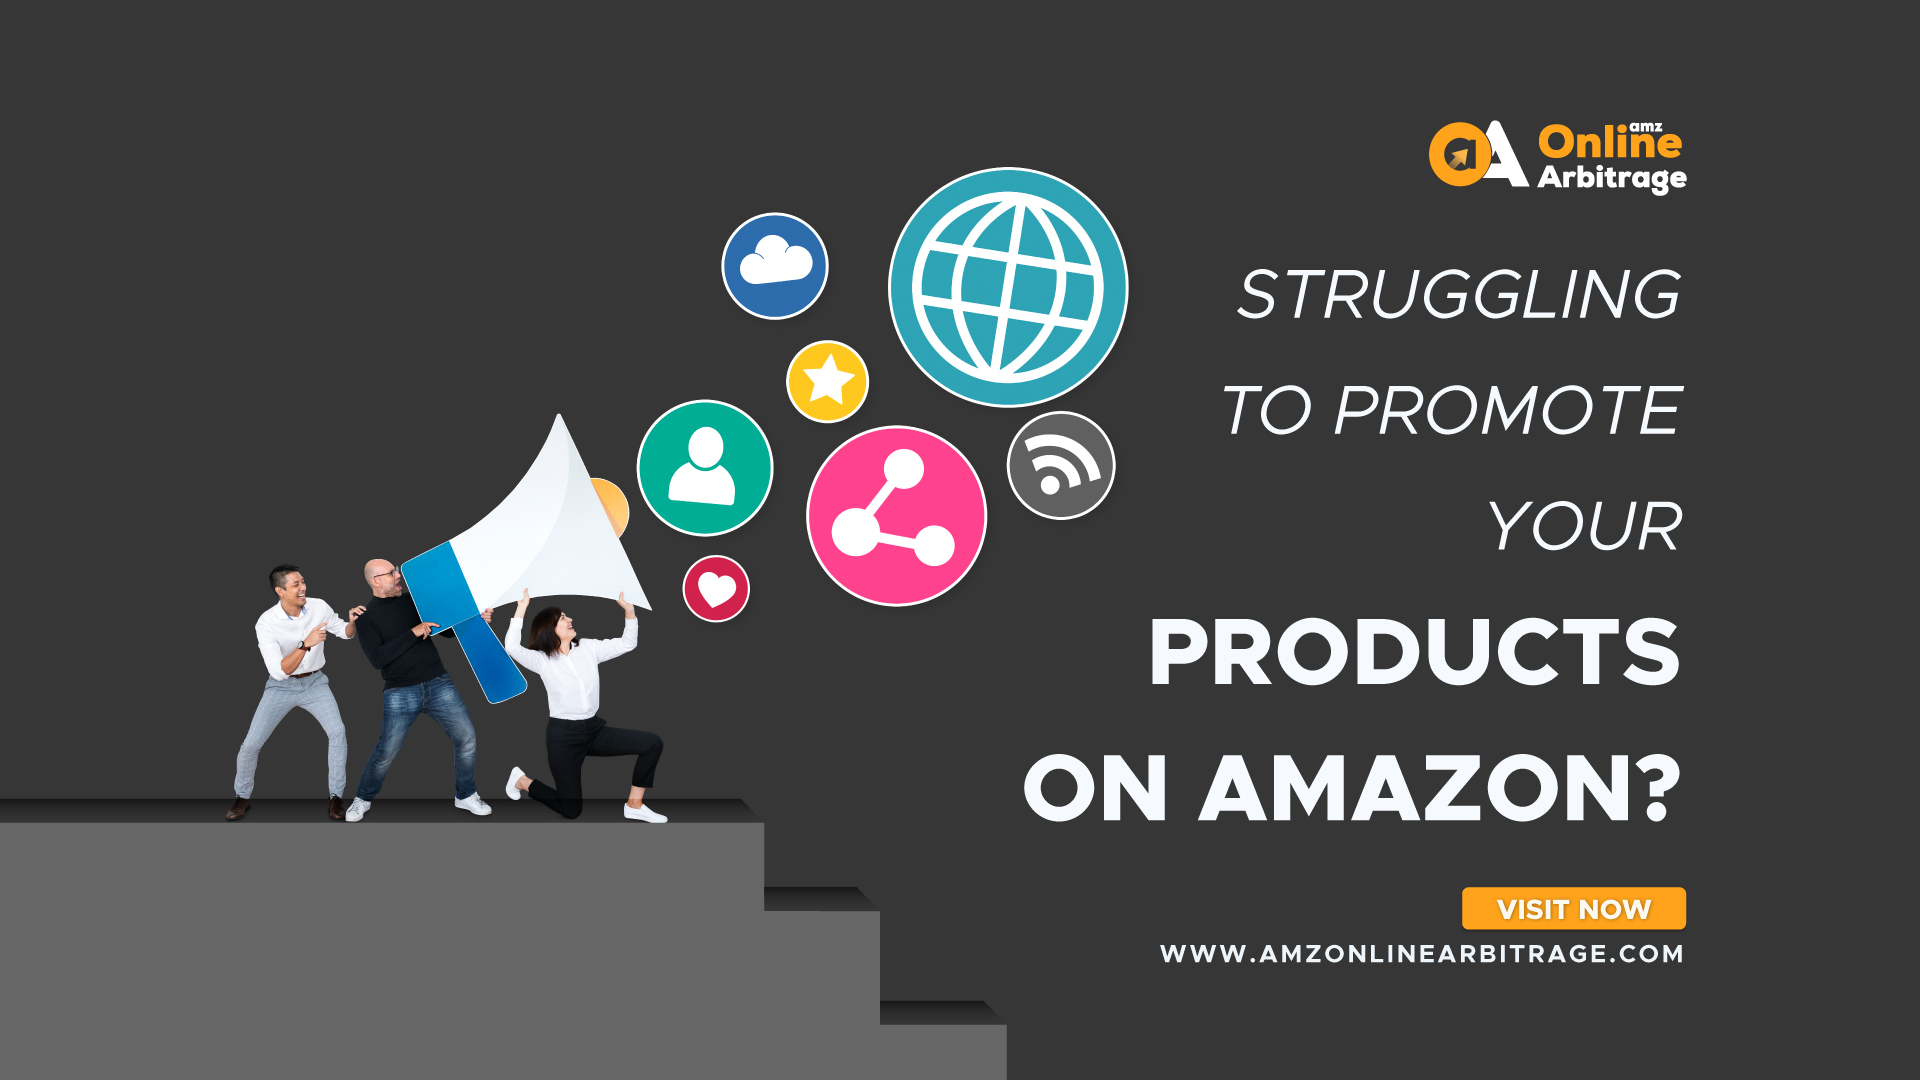 STRUGGLING TO PROMOTE YOUR PRODUCTS ON AMAZON?